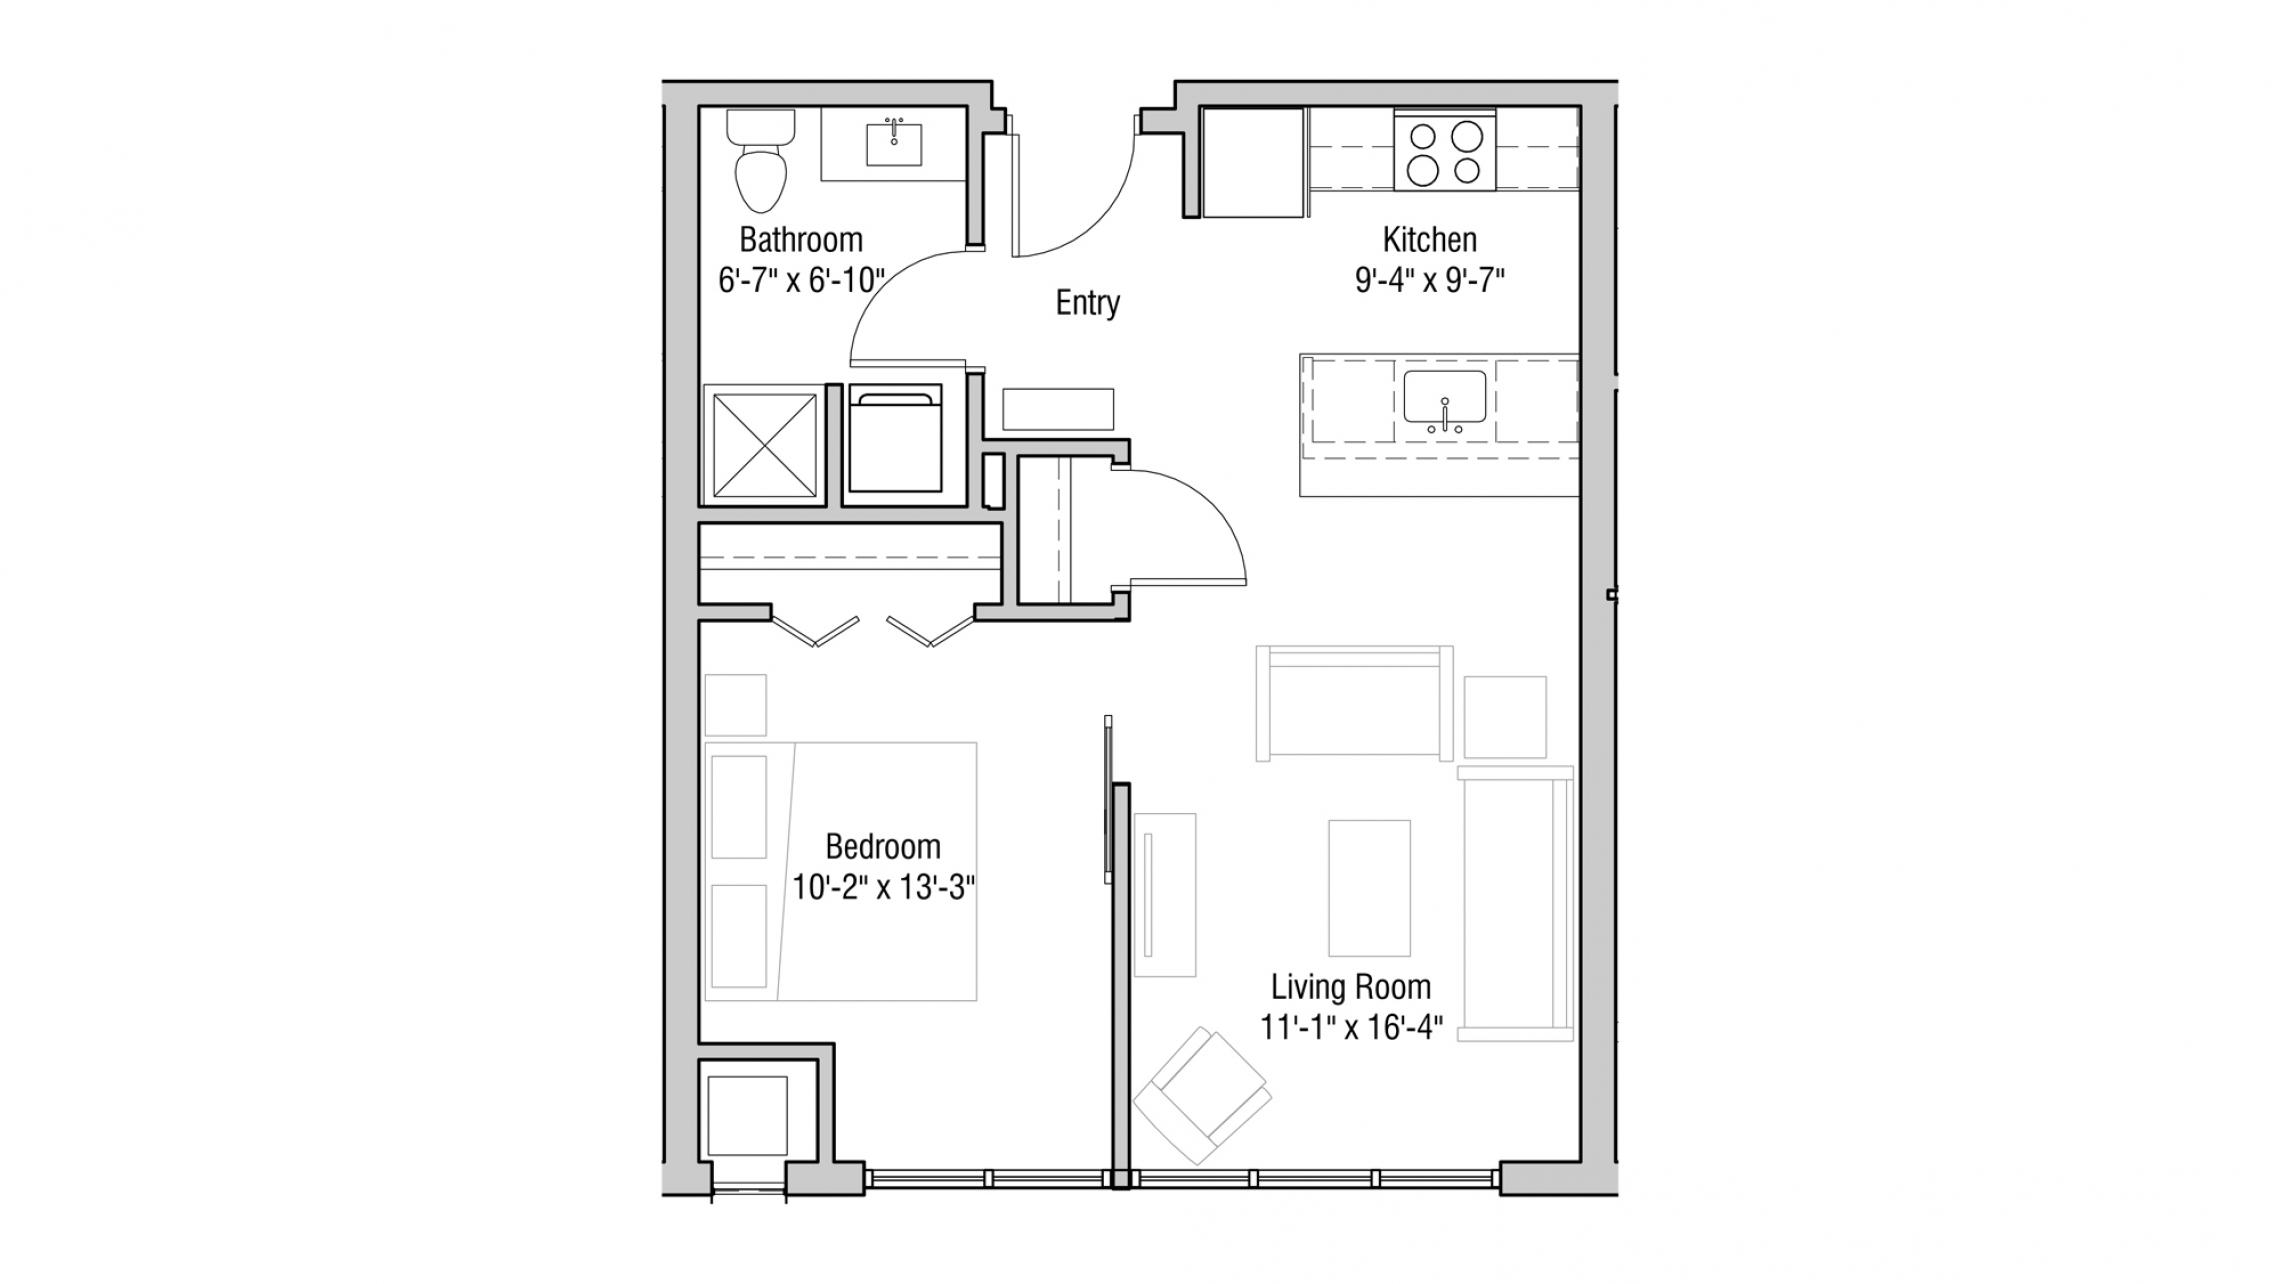 ULI Quarter Row 313 - One Bedroom, One Bathroom